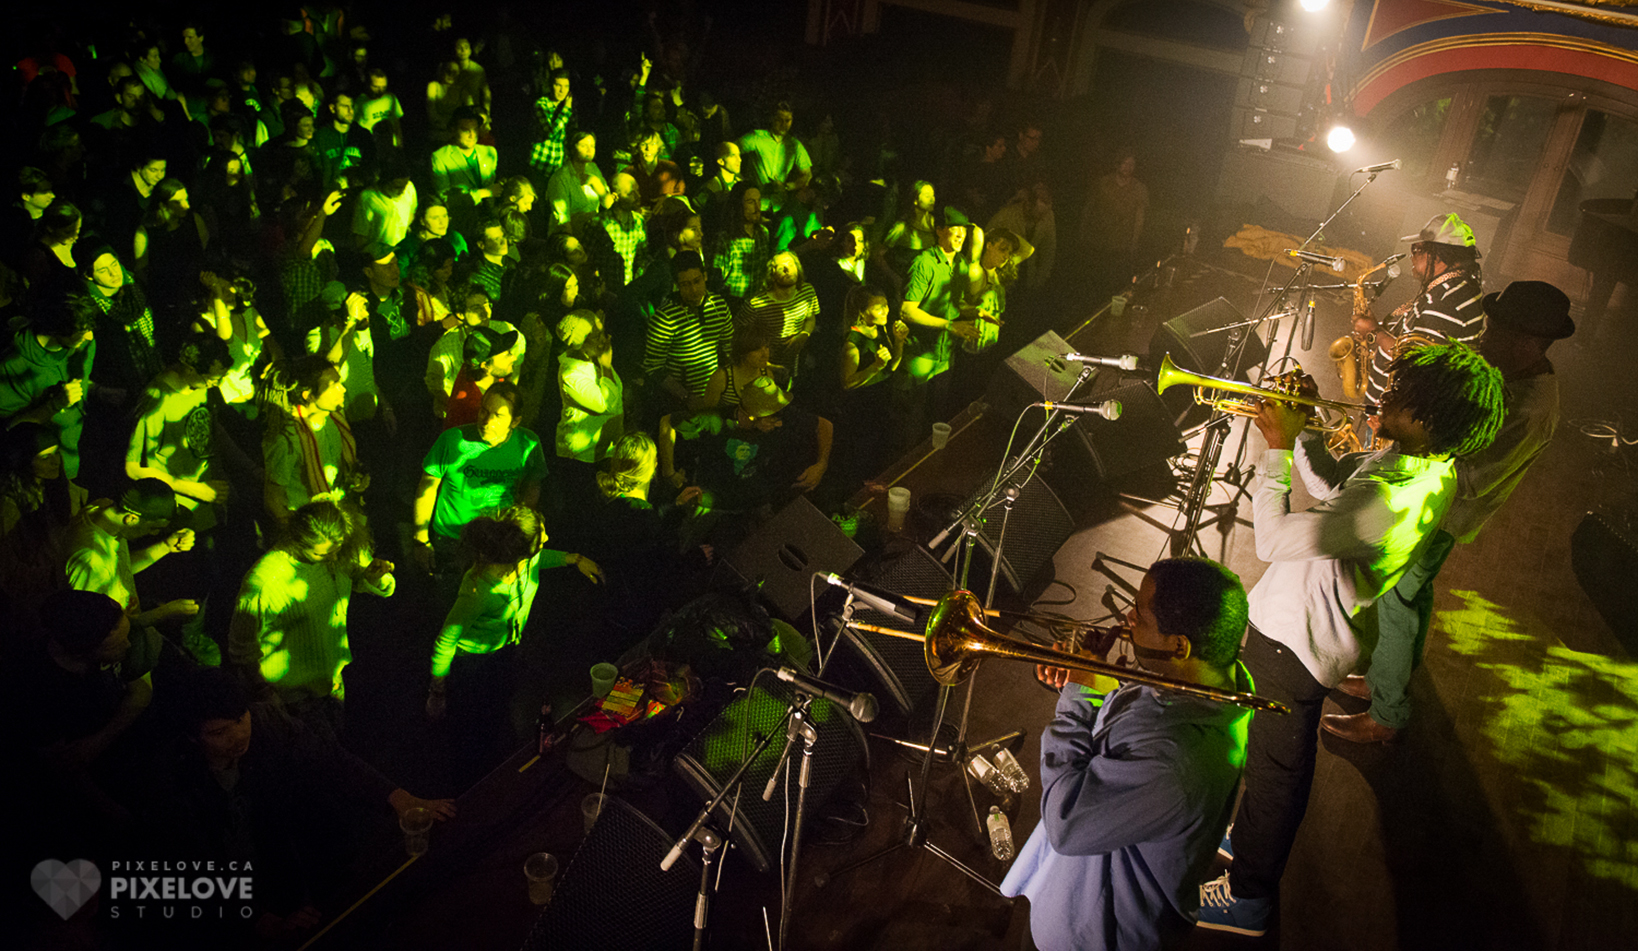 The Skatalites and The Beatdown performed at Rialto Theatre in Montreal on November 21 2013.